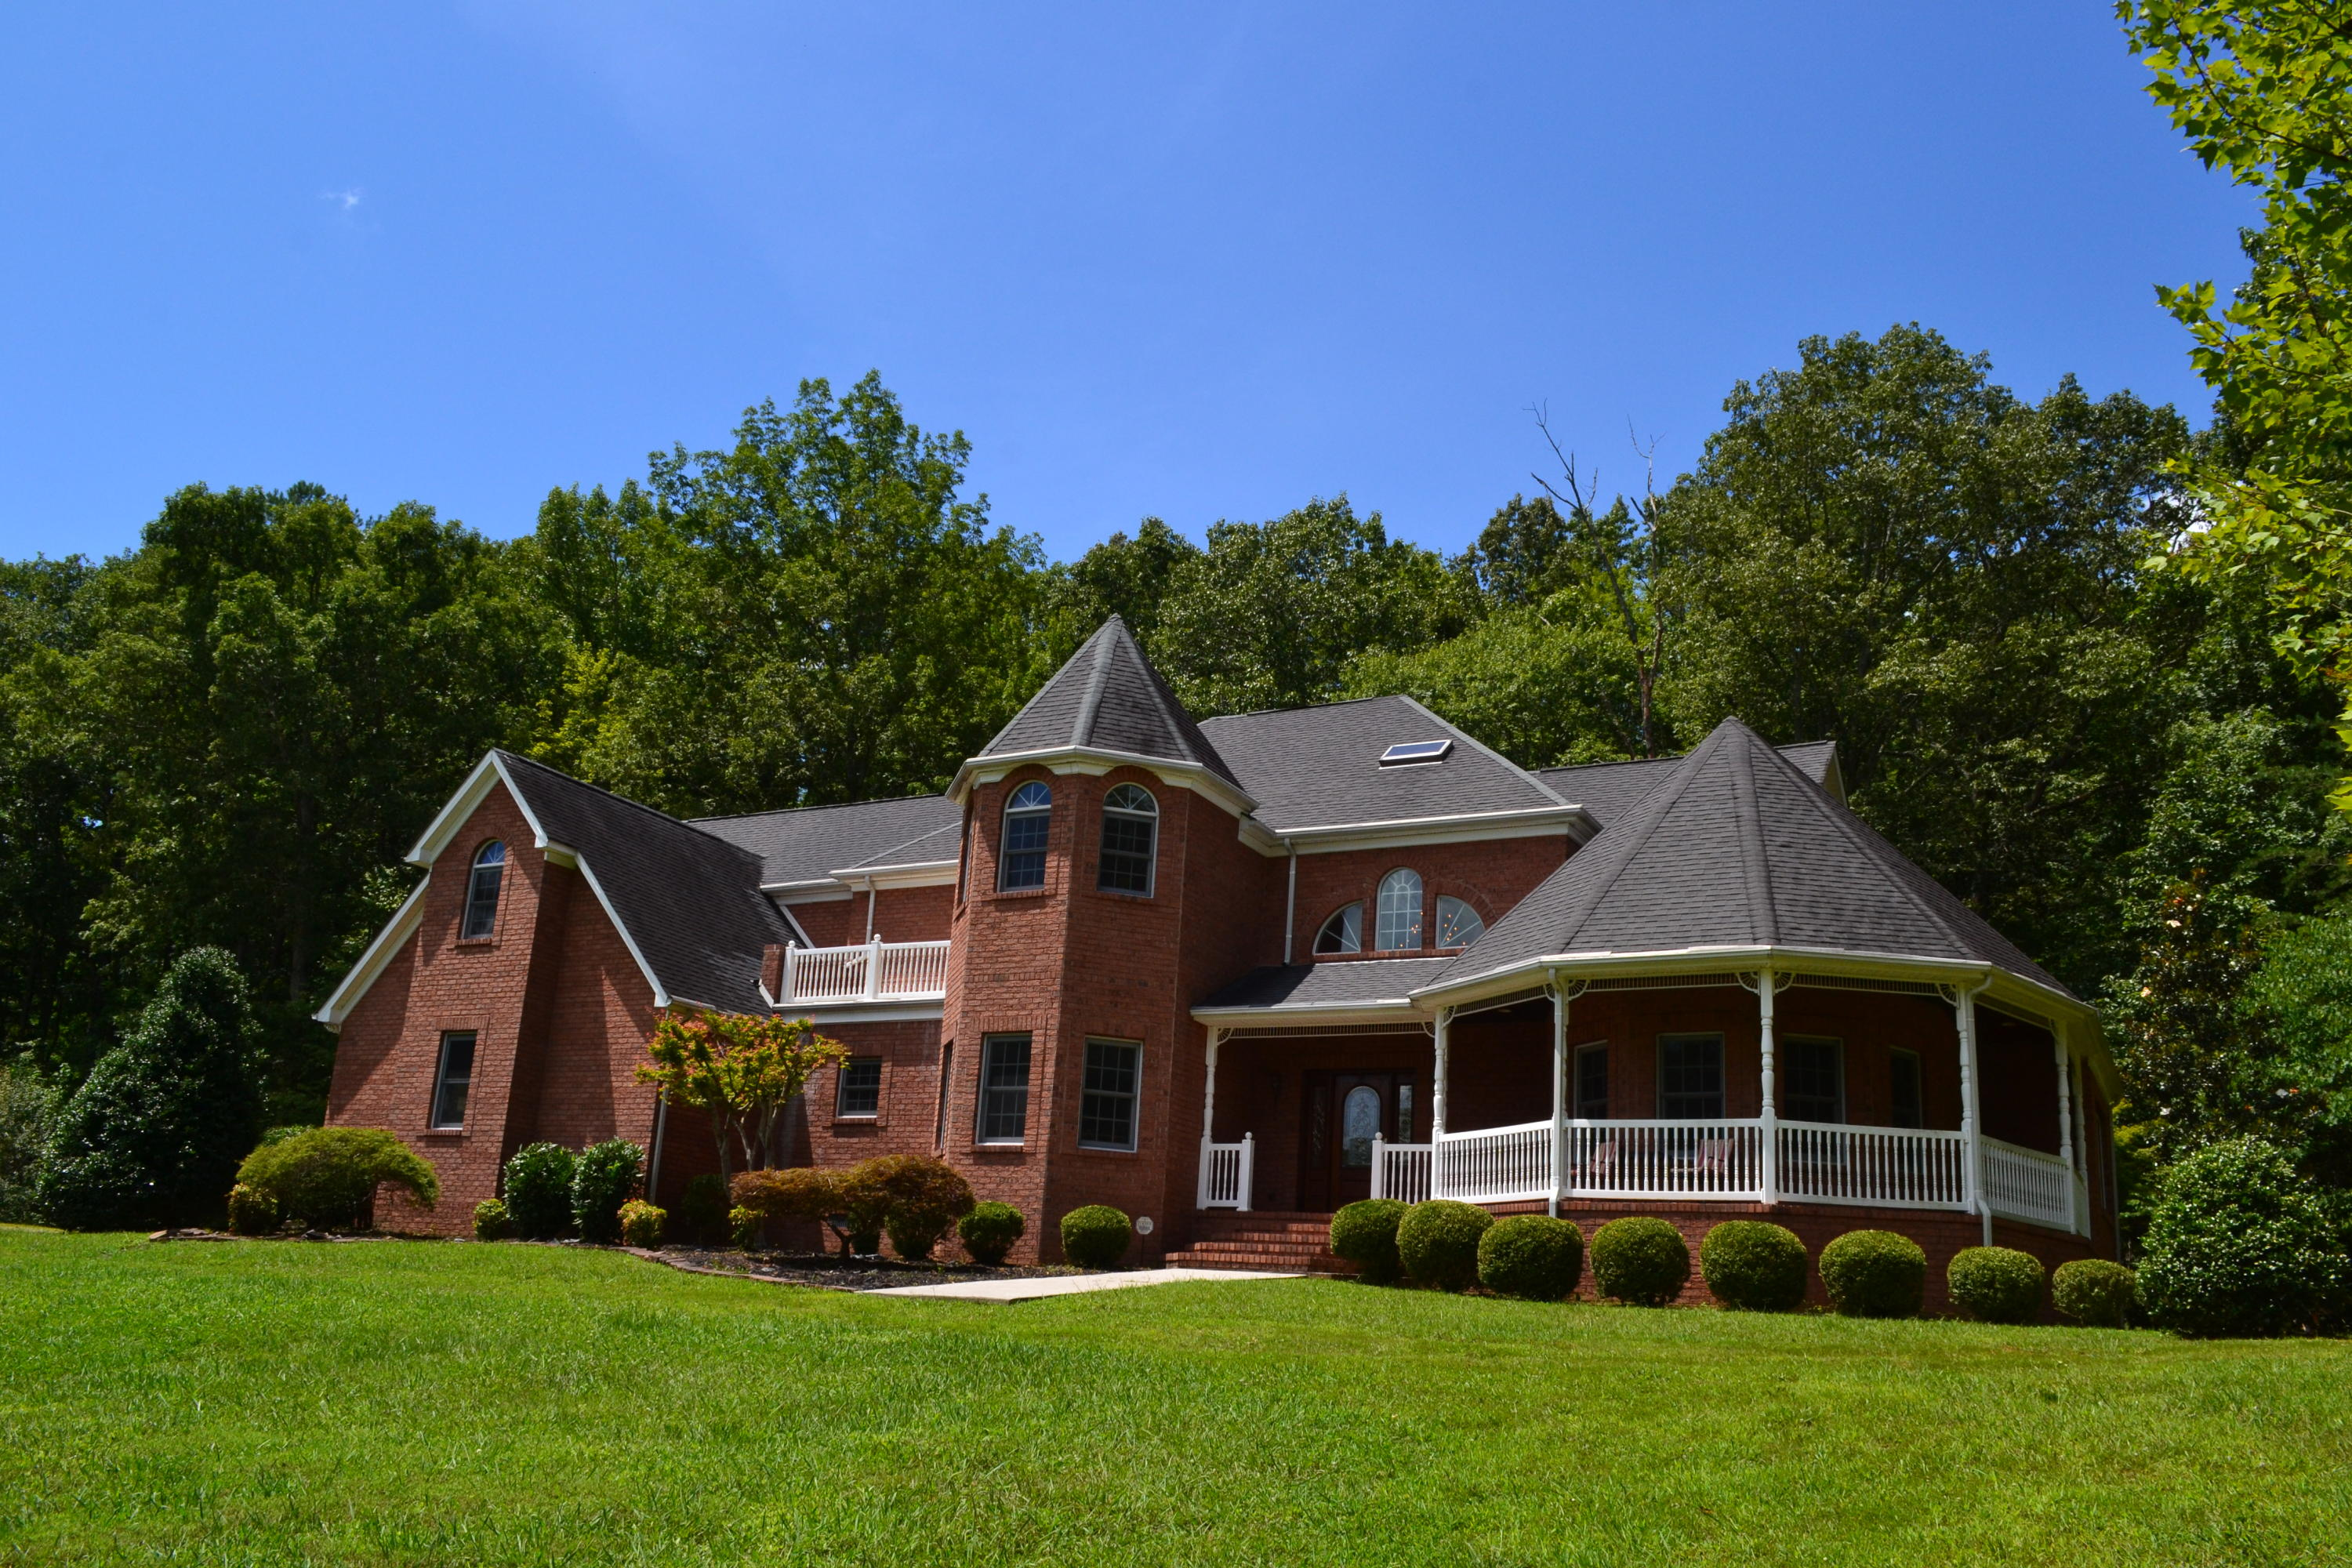 116 Mountain Valley Dr W, Dunlap, TN 37327